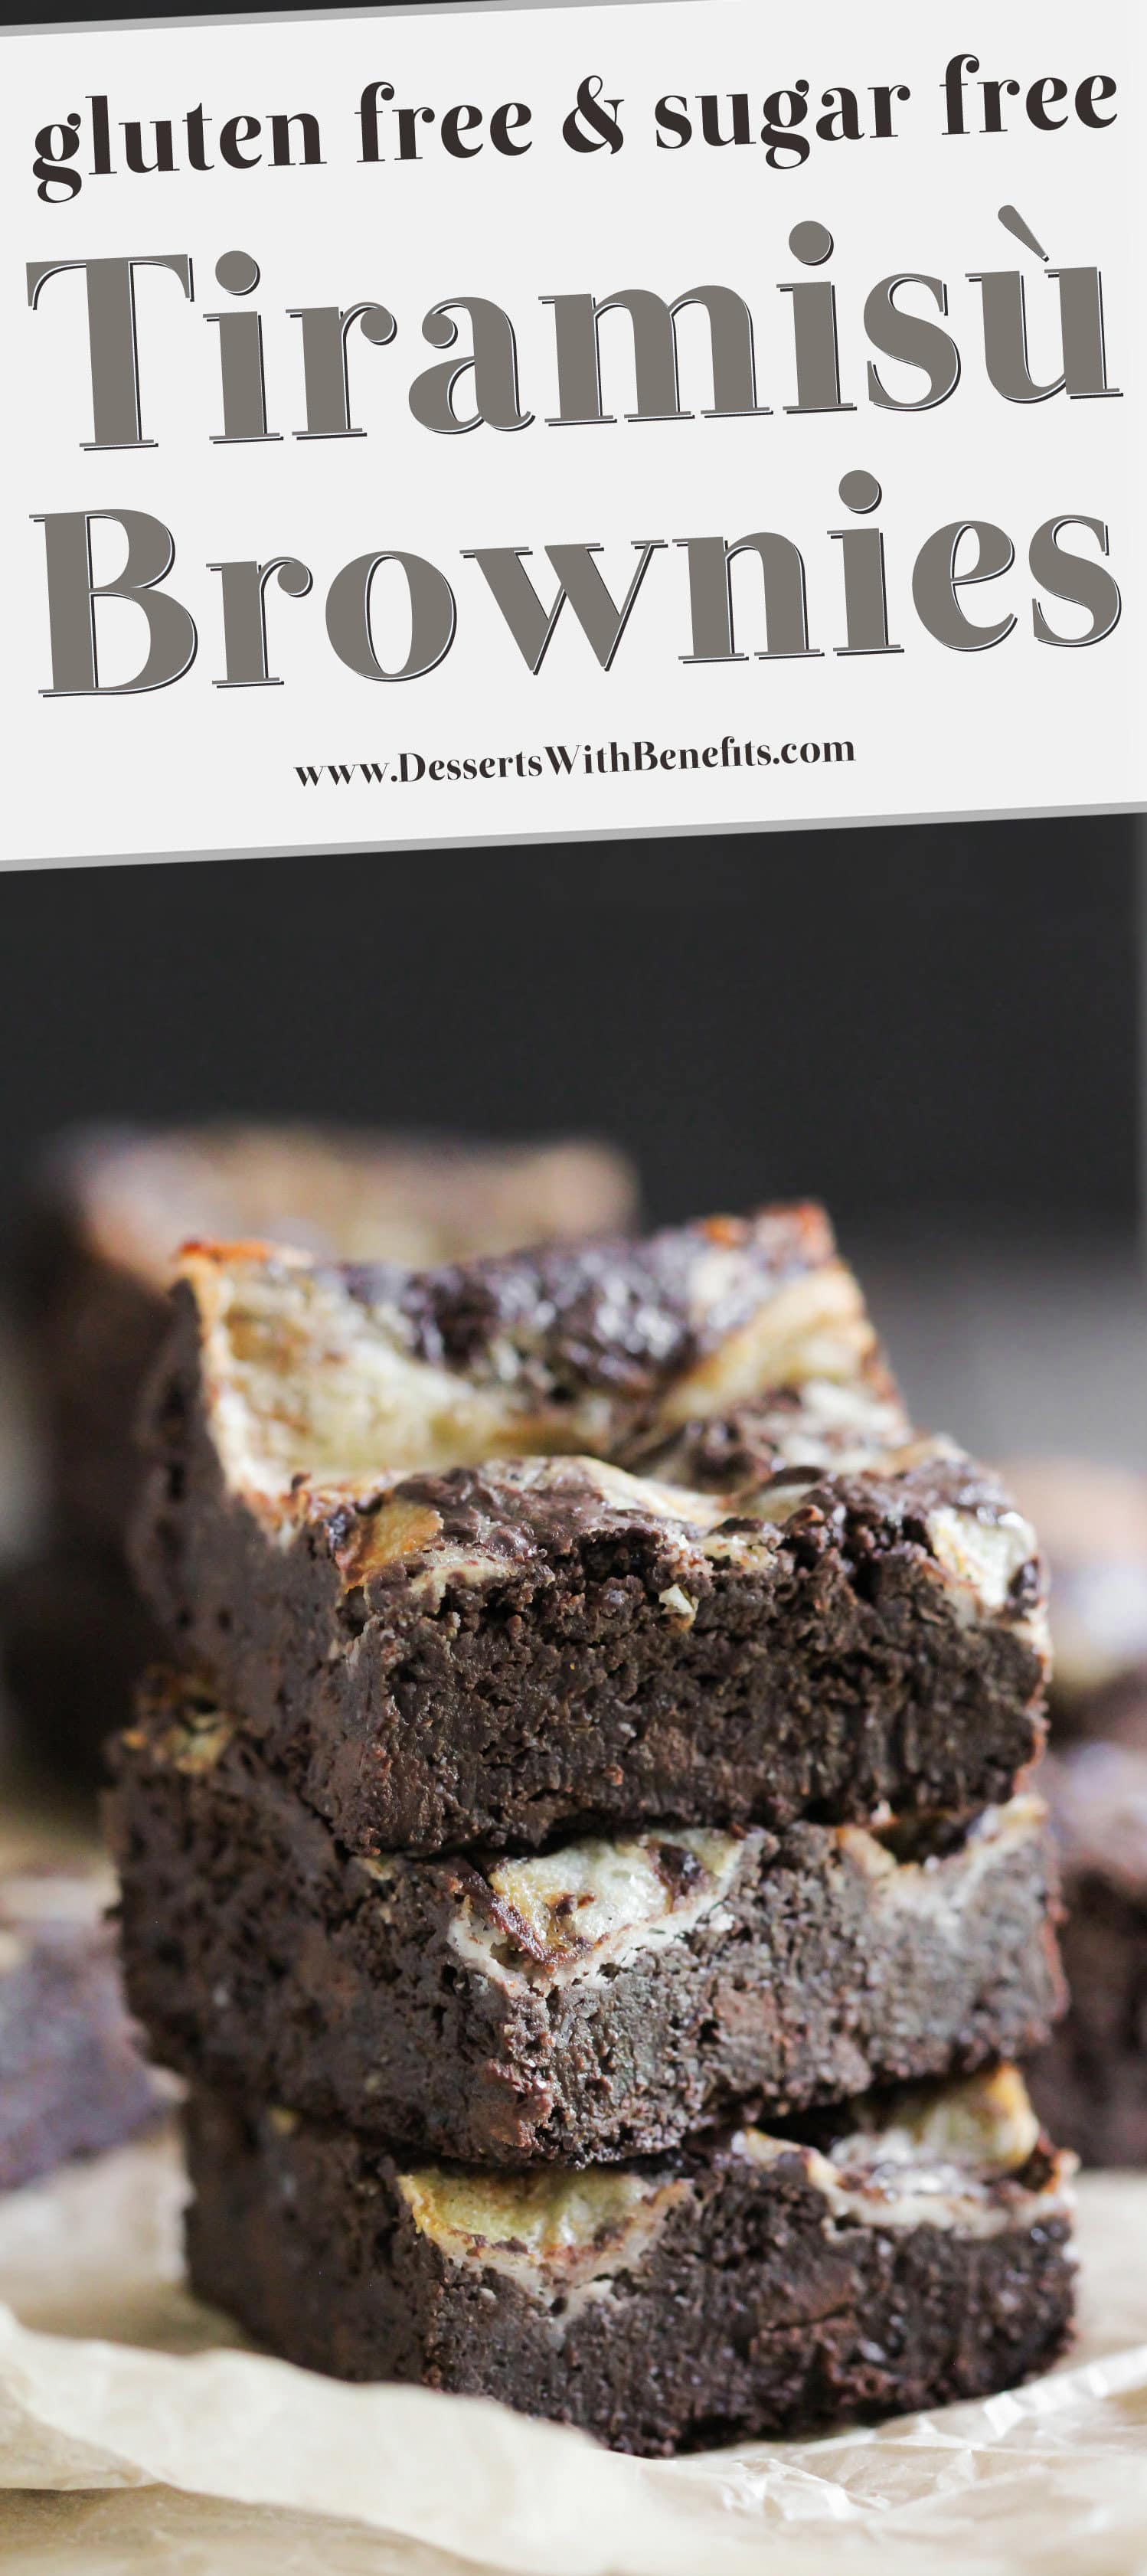 These Healthy Tiramisu Brownies are utterly LIFE-CHANGING. They're decadent, uber fudgy, and topped with a rich mascarpone swirl. These brownies have got the important Tiramisu components: coffee, mascarpone, rum. One bite and you'd never believe these are sugar free, high fiber, high protein, and gluten free too! Healthy Dessert Recipes at the Desserts With Benefits Blog (www.DessertsWithBenefits.com)